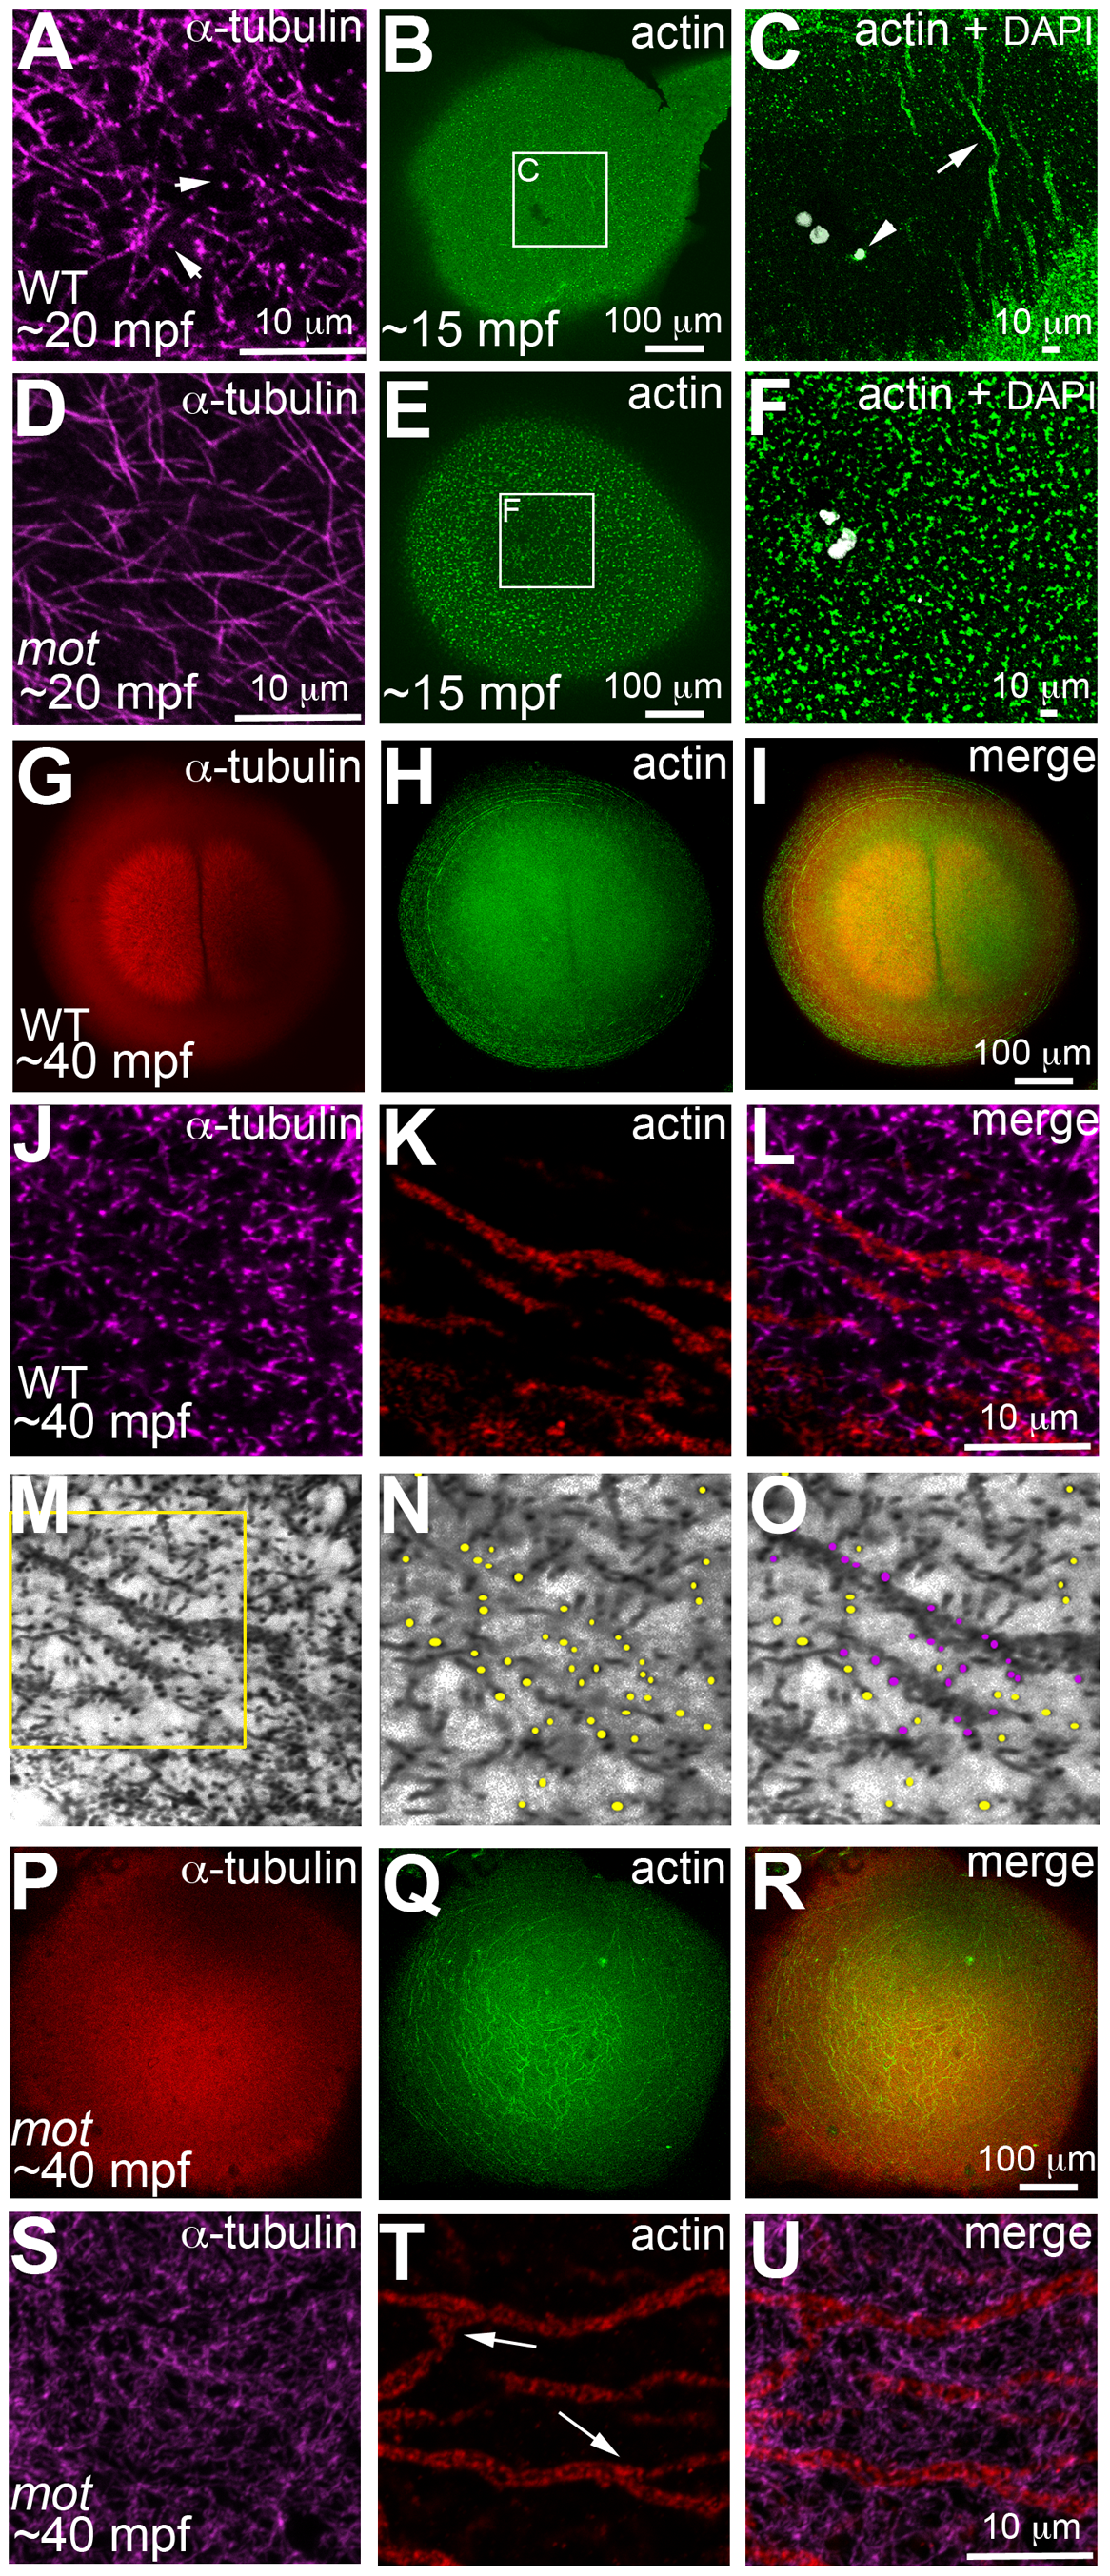 <i>motley/birc5b</i> mutants fail to rearrange cortical actin microfilaments.